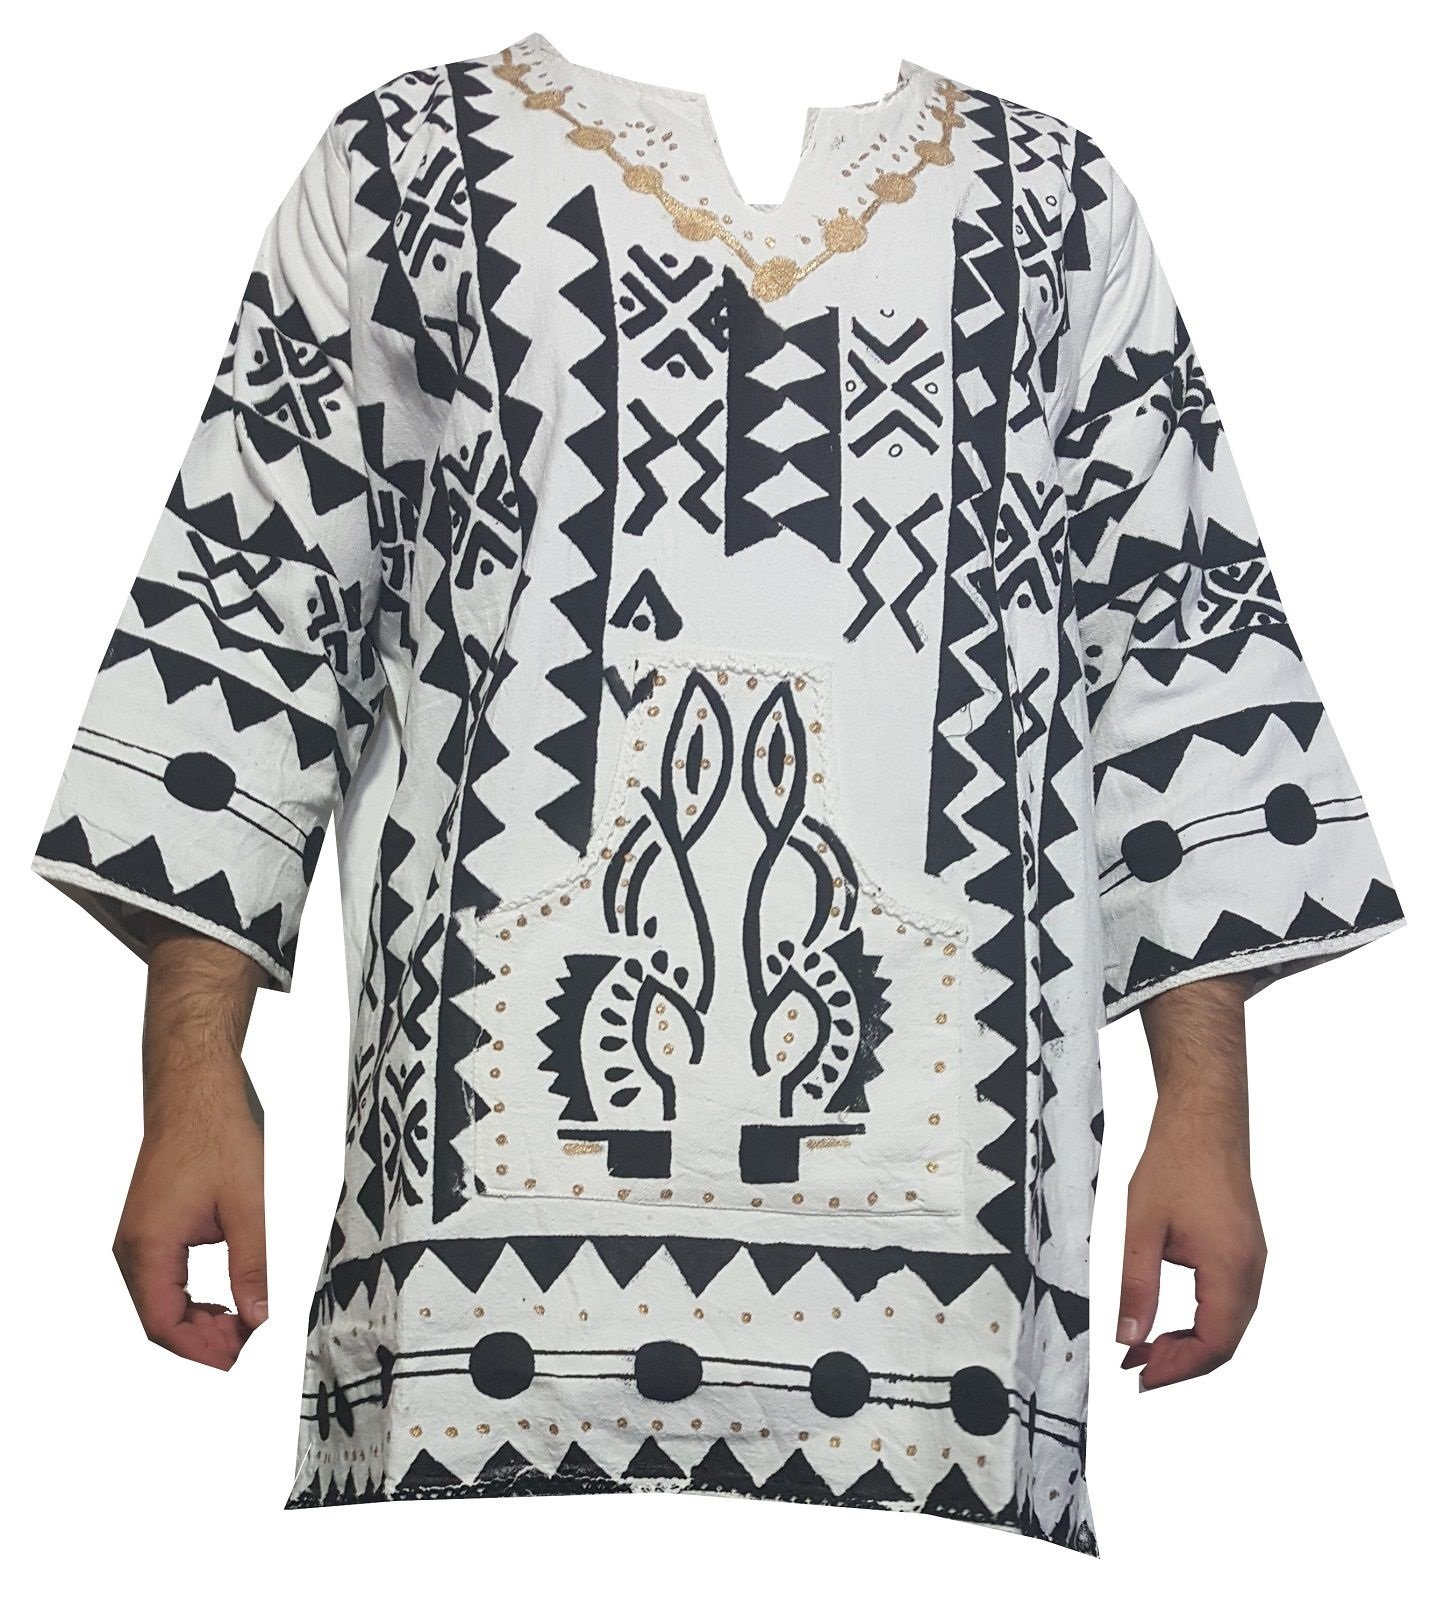 Decoraapparel Mens African Dashiki Shirt Mudcloth Organic Cotton Vintage Hippie Top Blouse One Size